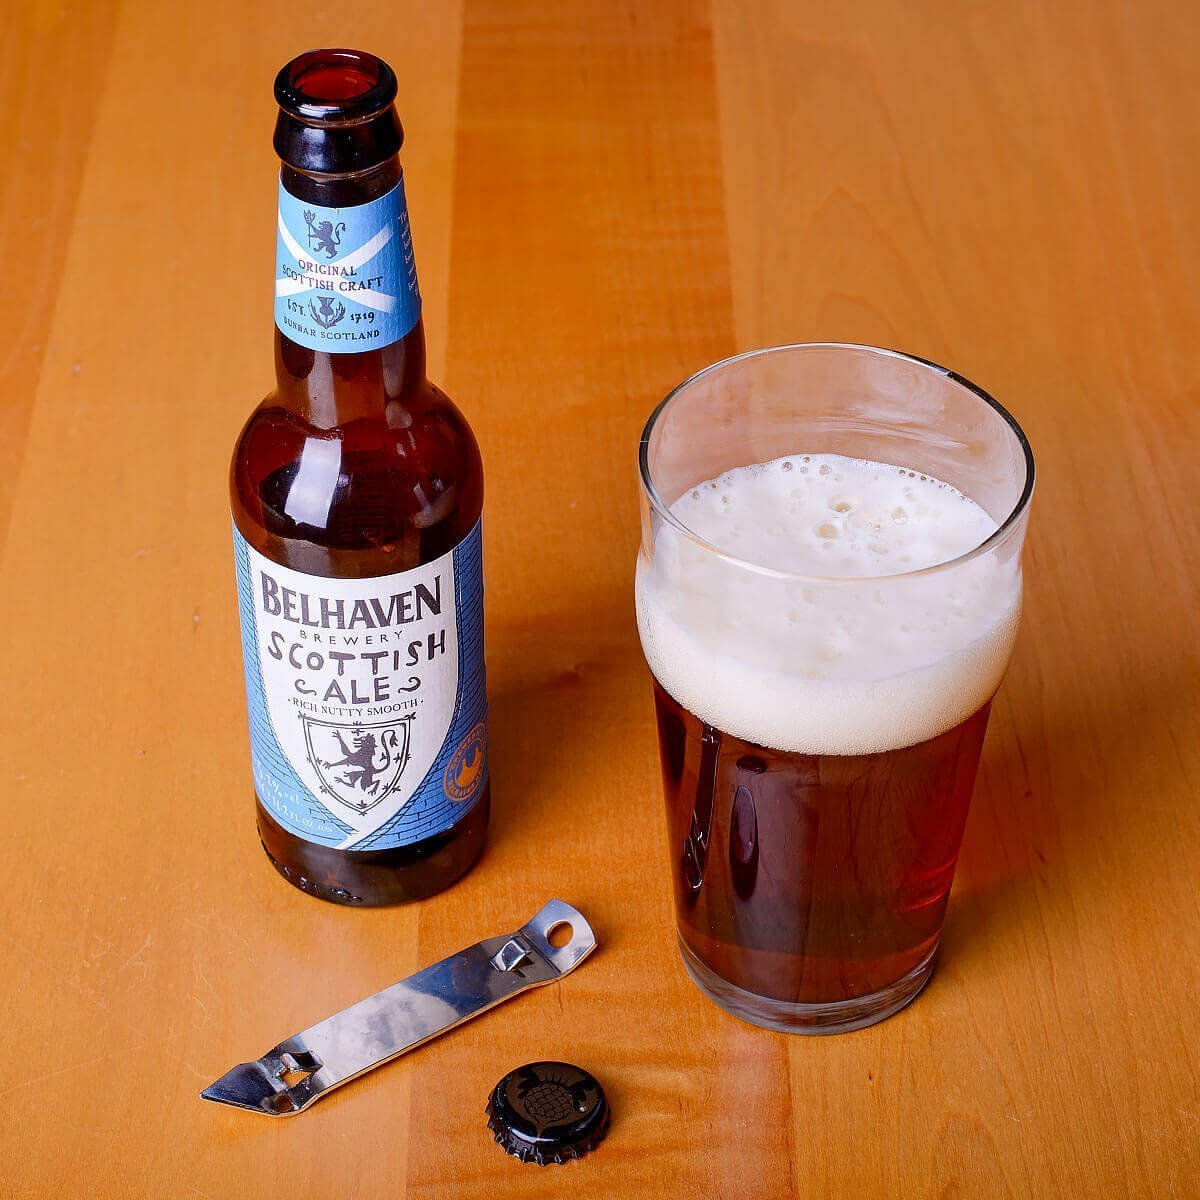 Belhaven Scottish Ale is brewed in the Scottish Export style by Belhaven Brewery Company Ltd. and blends biscuit, toffee, earthy hops, and lemon.